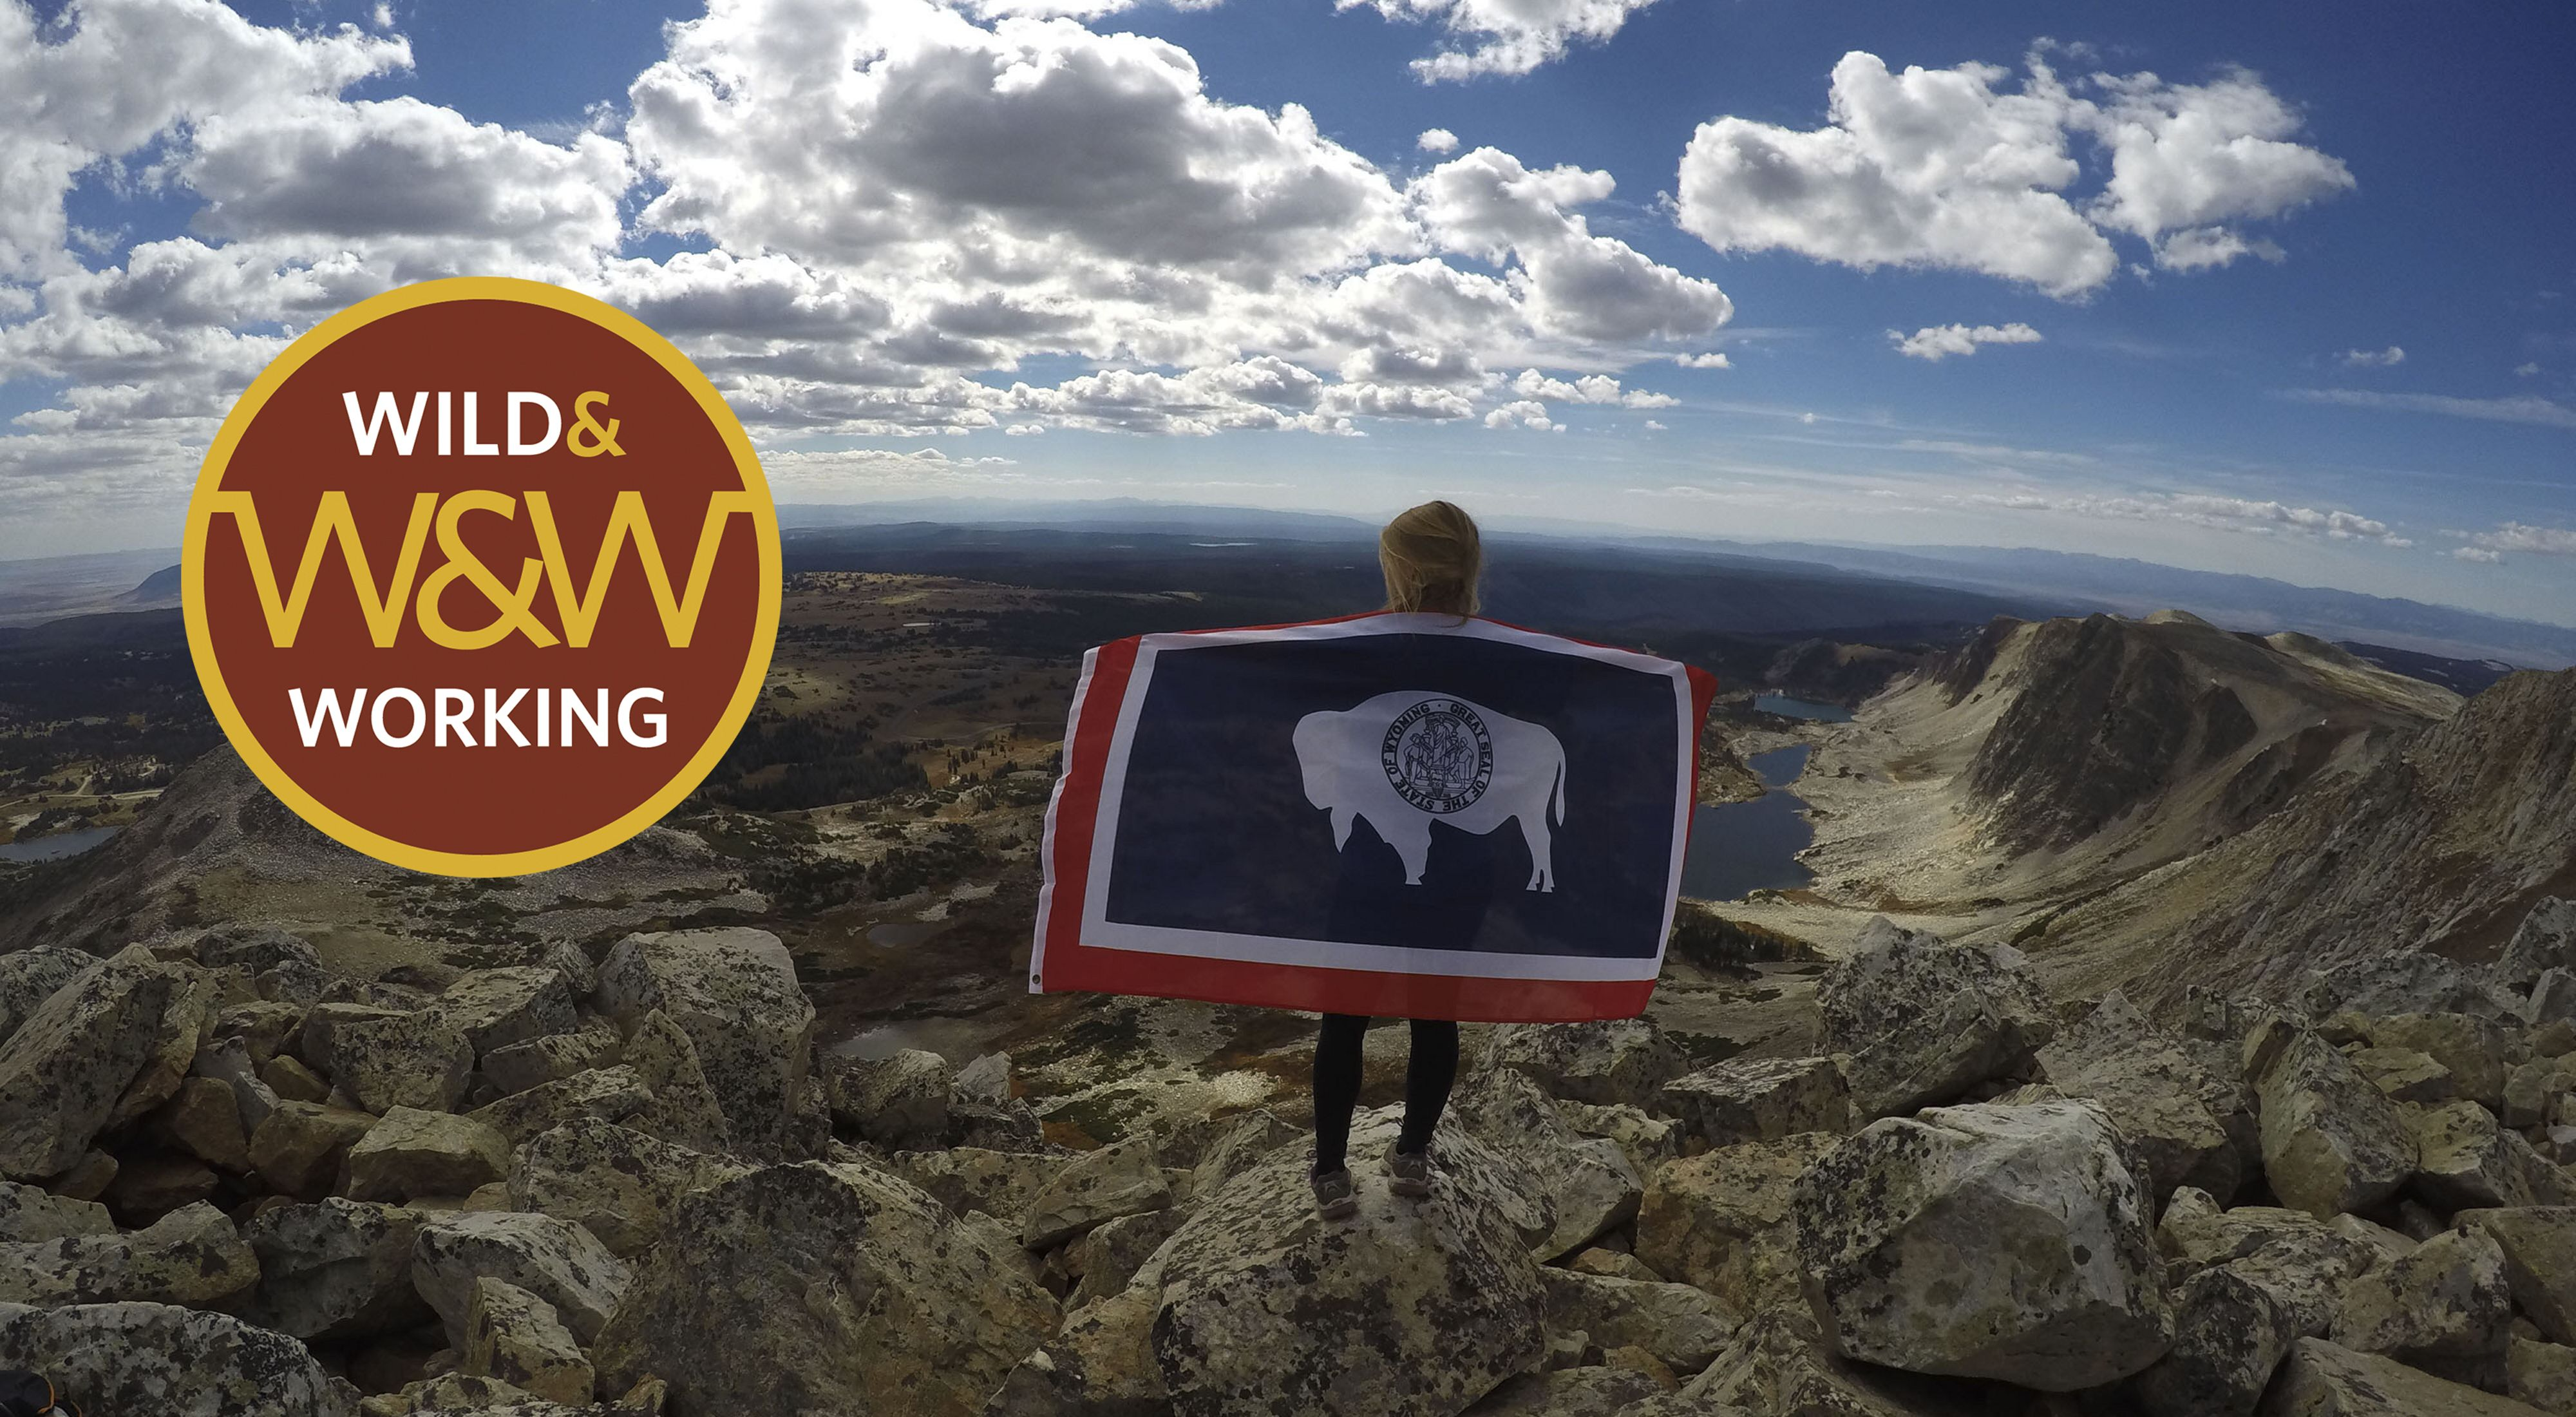 Girl with Wyoming state flag stands on mountain under cloudy blue skies.